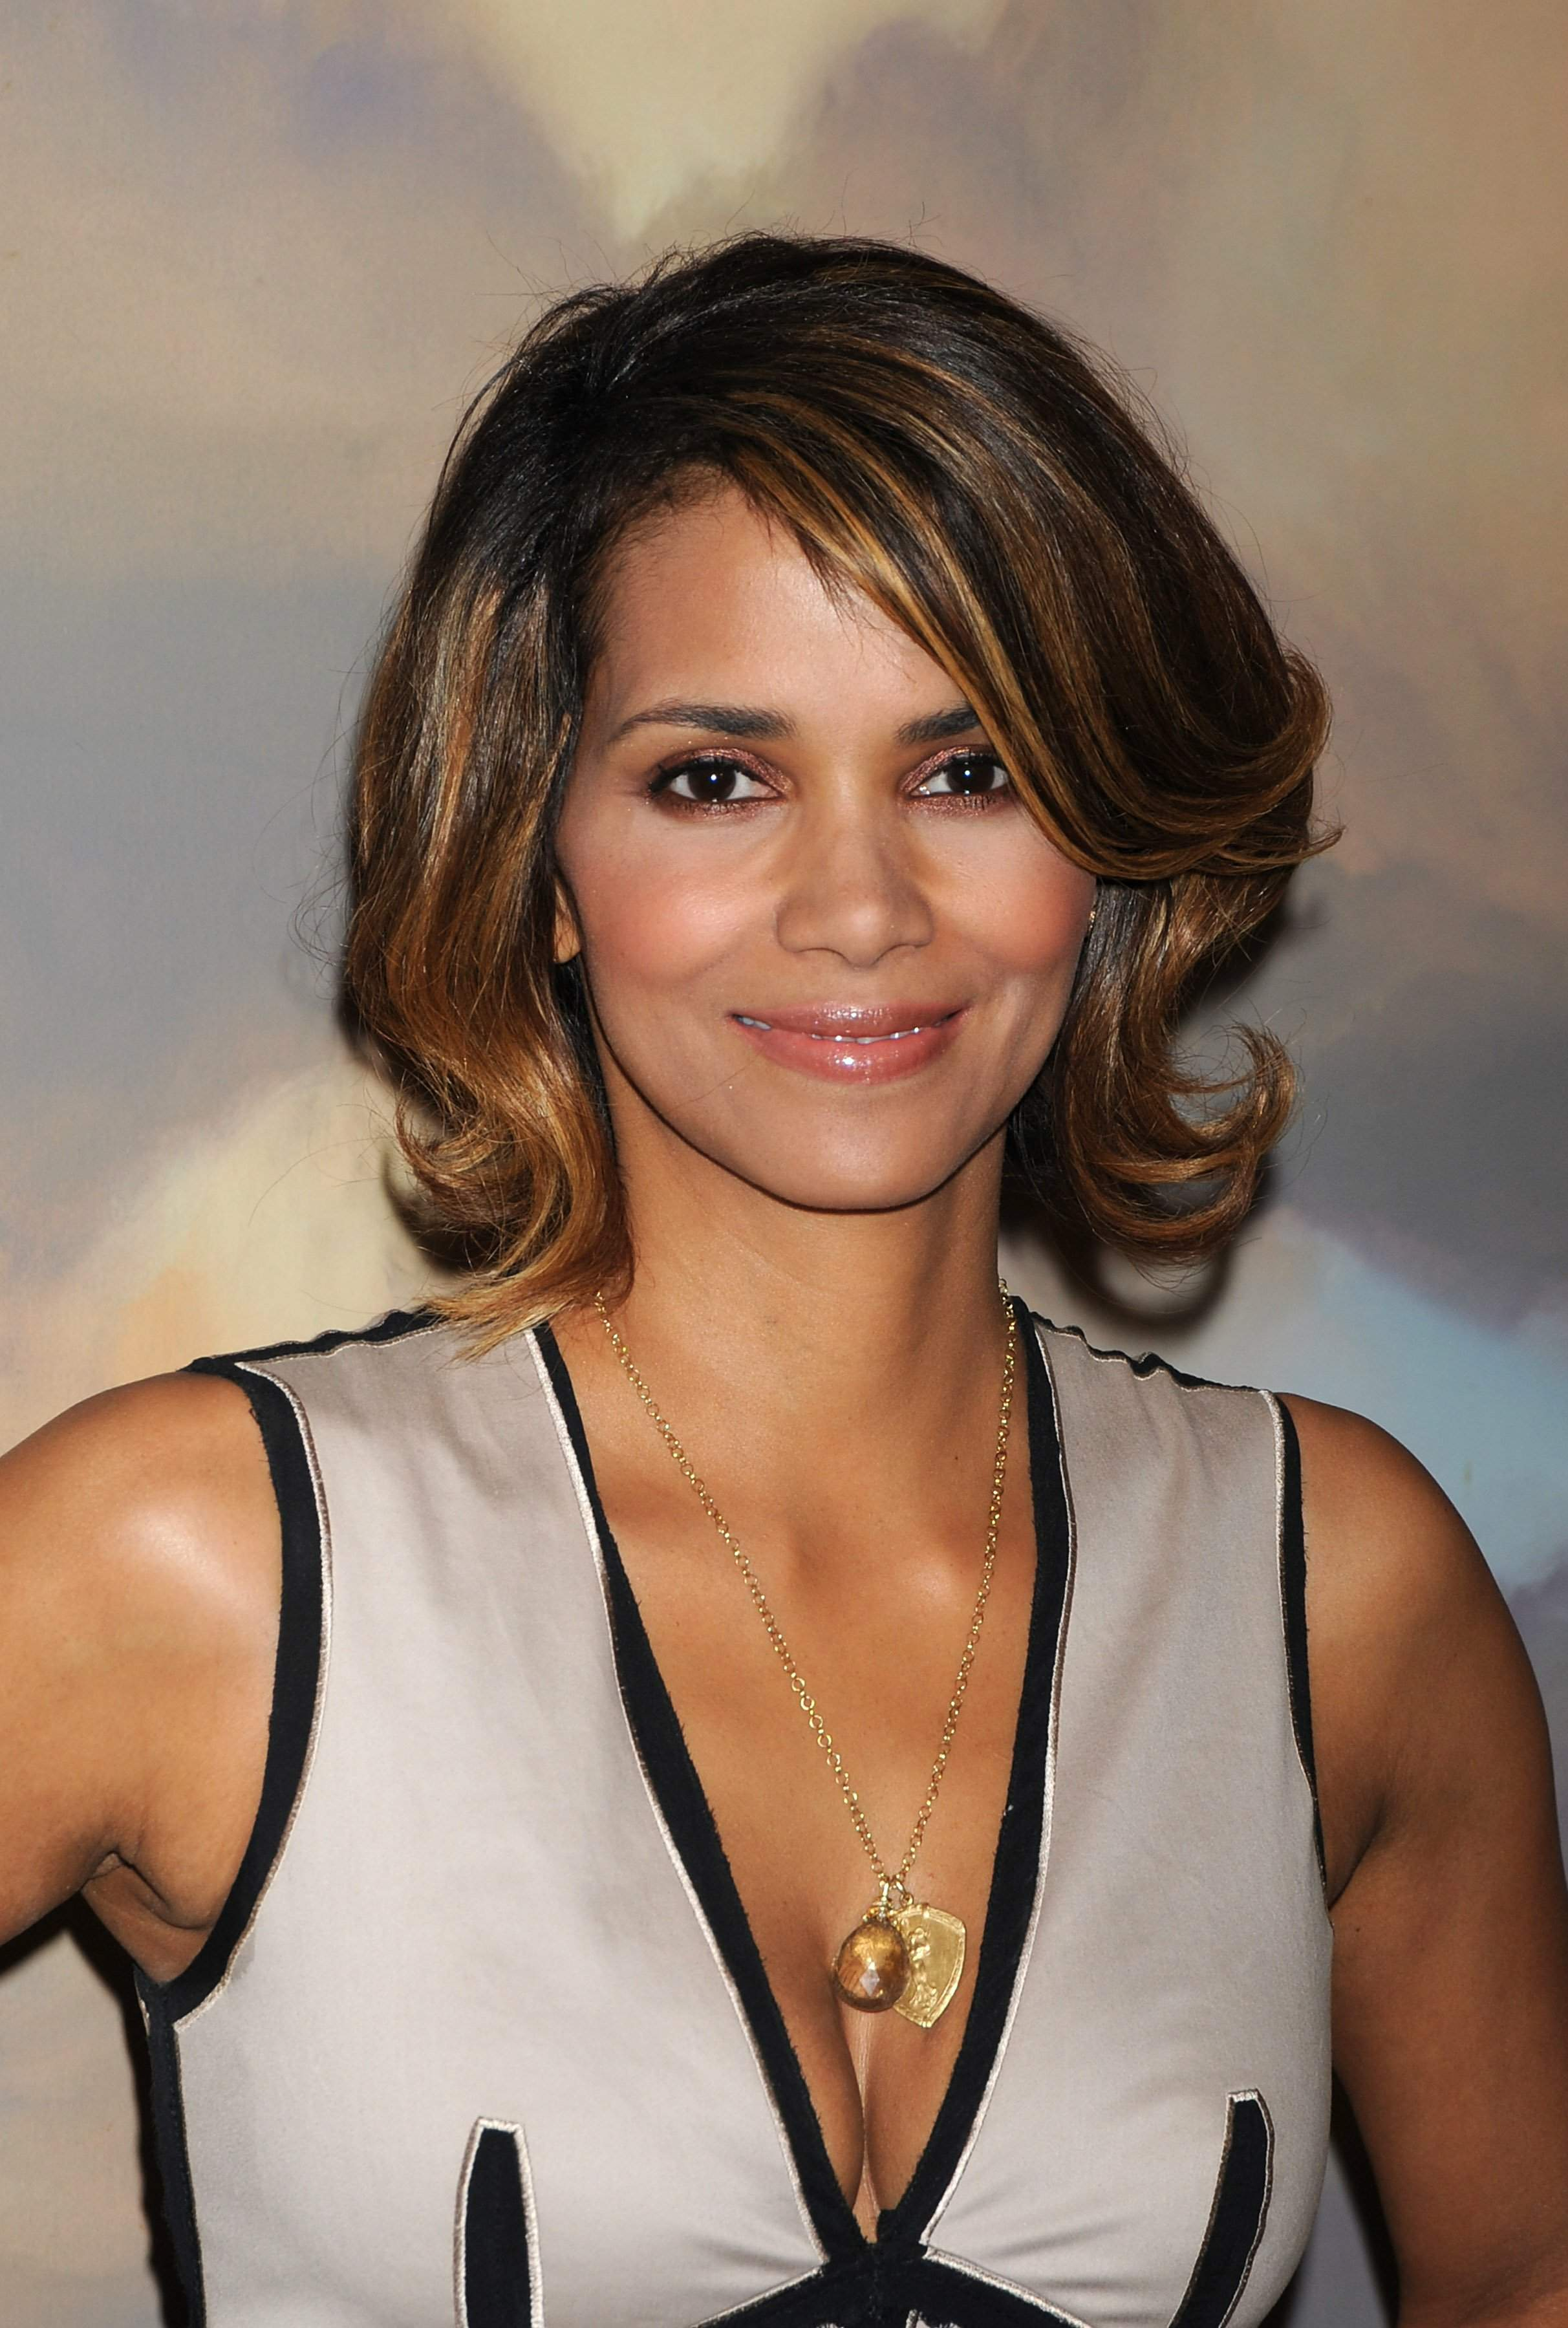 63339_Halle_Berry_2009_Jenesse_Silver_Rose_Gala_Auction_in_Beverly_Hills_73_122_571lo.jpg